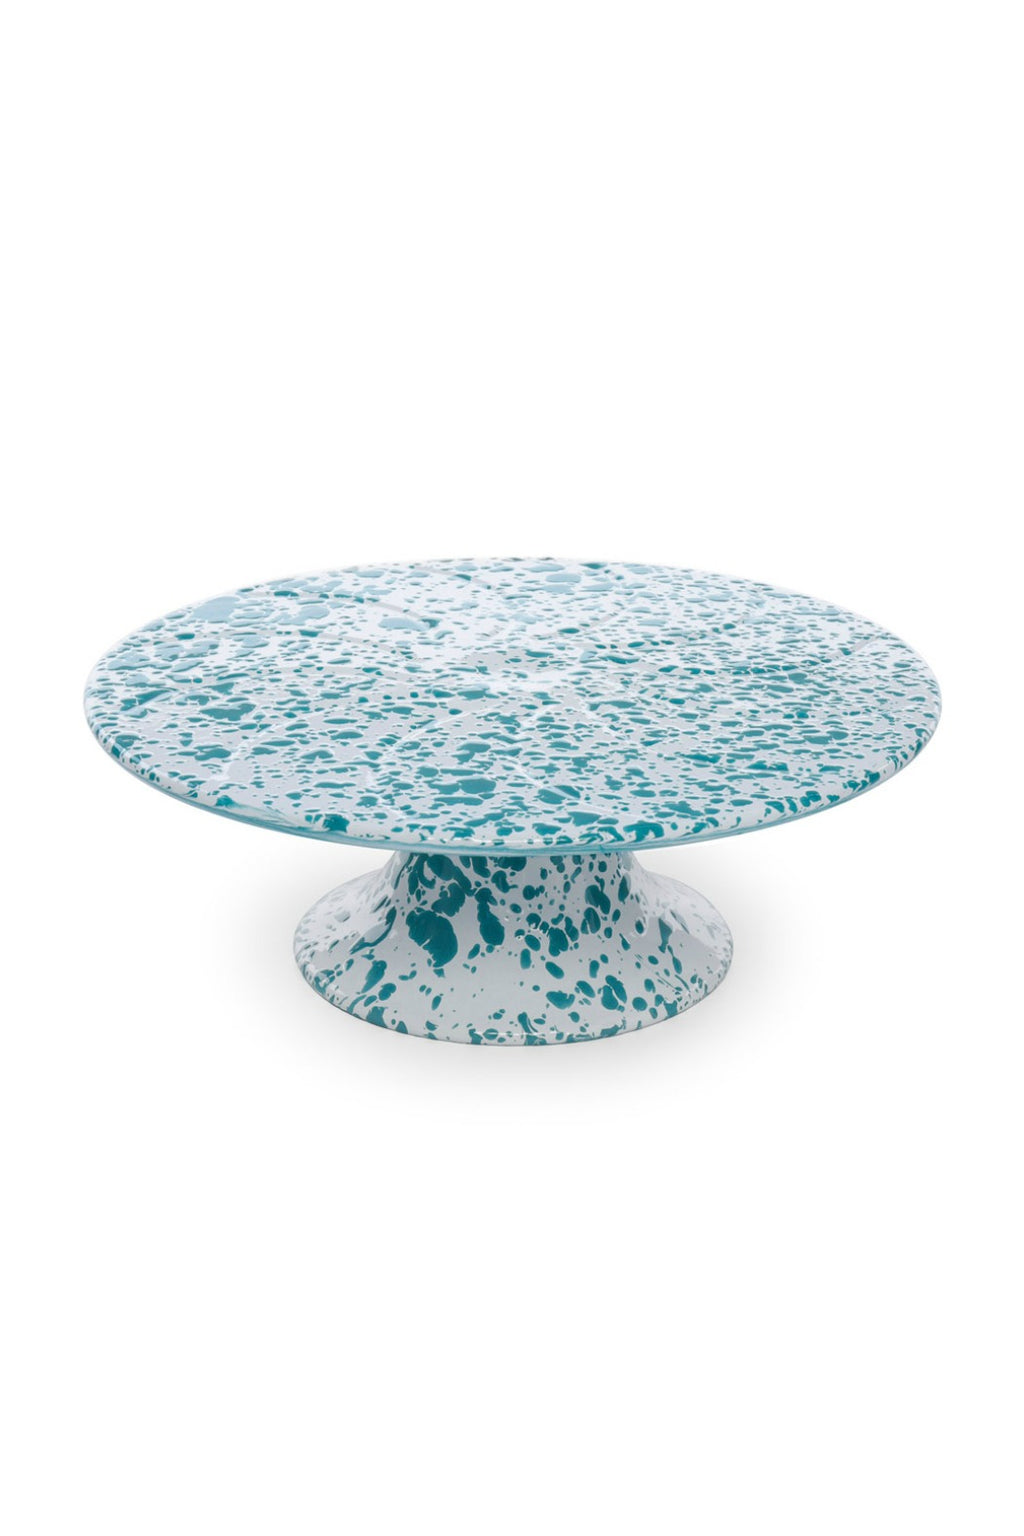 "Crow Canyon Home 11"" Cake Platter - Turquoise & White"